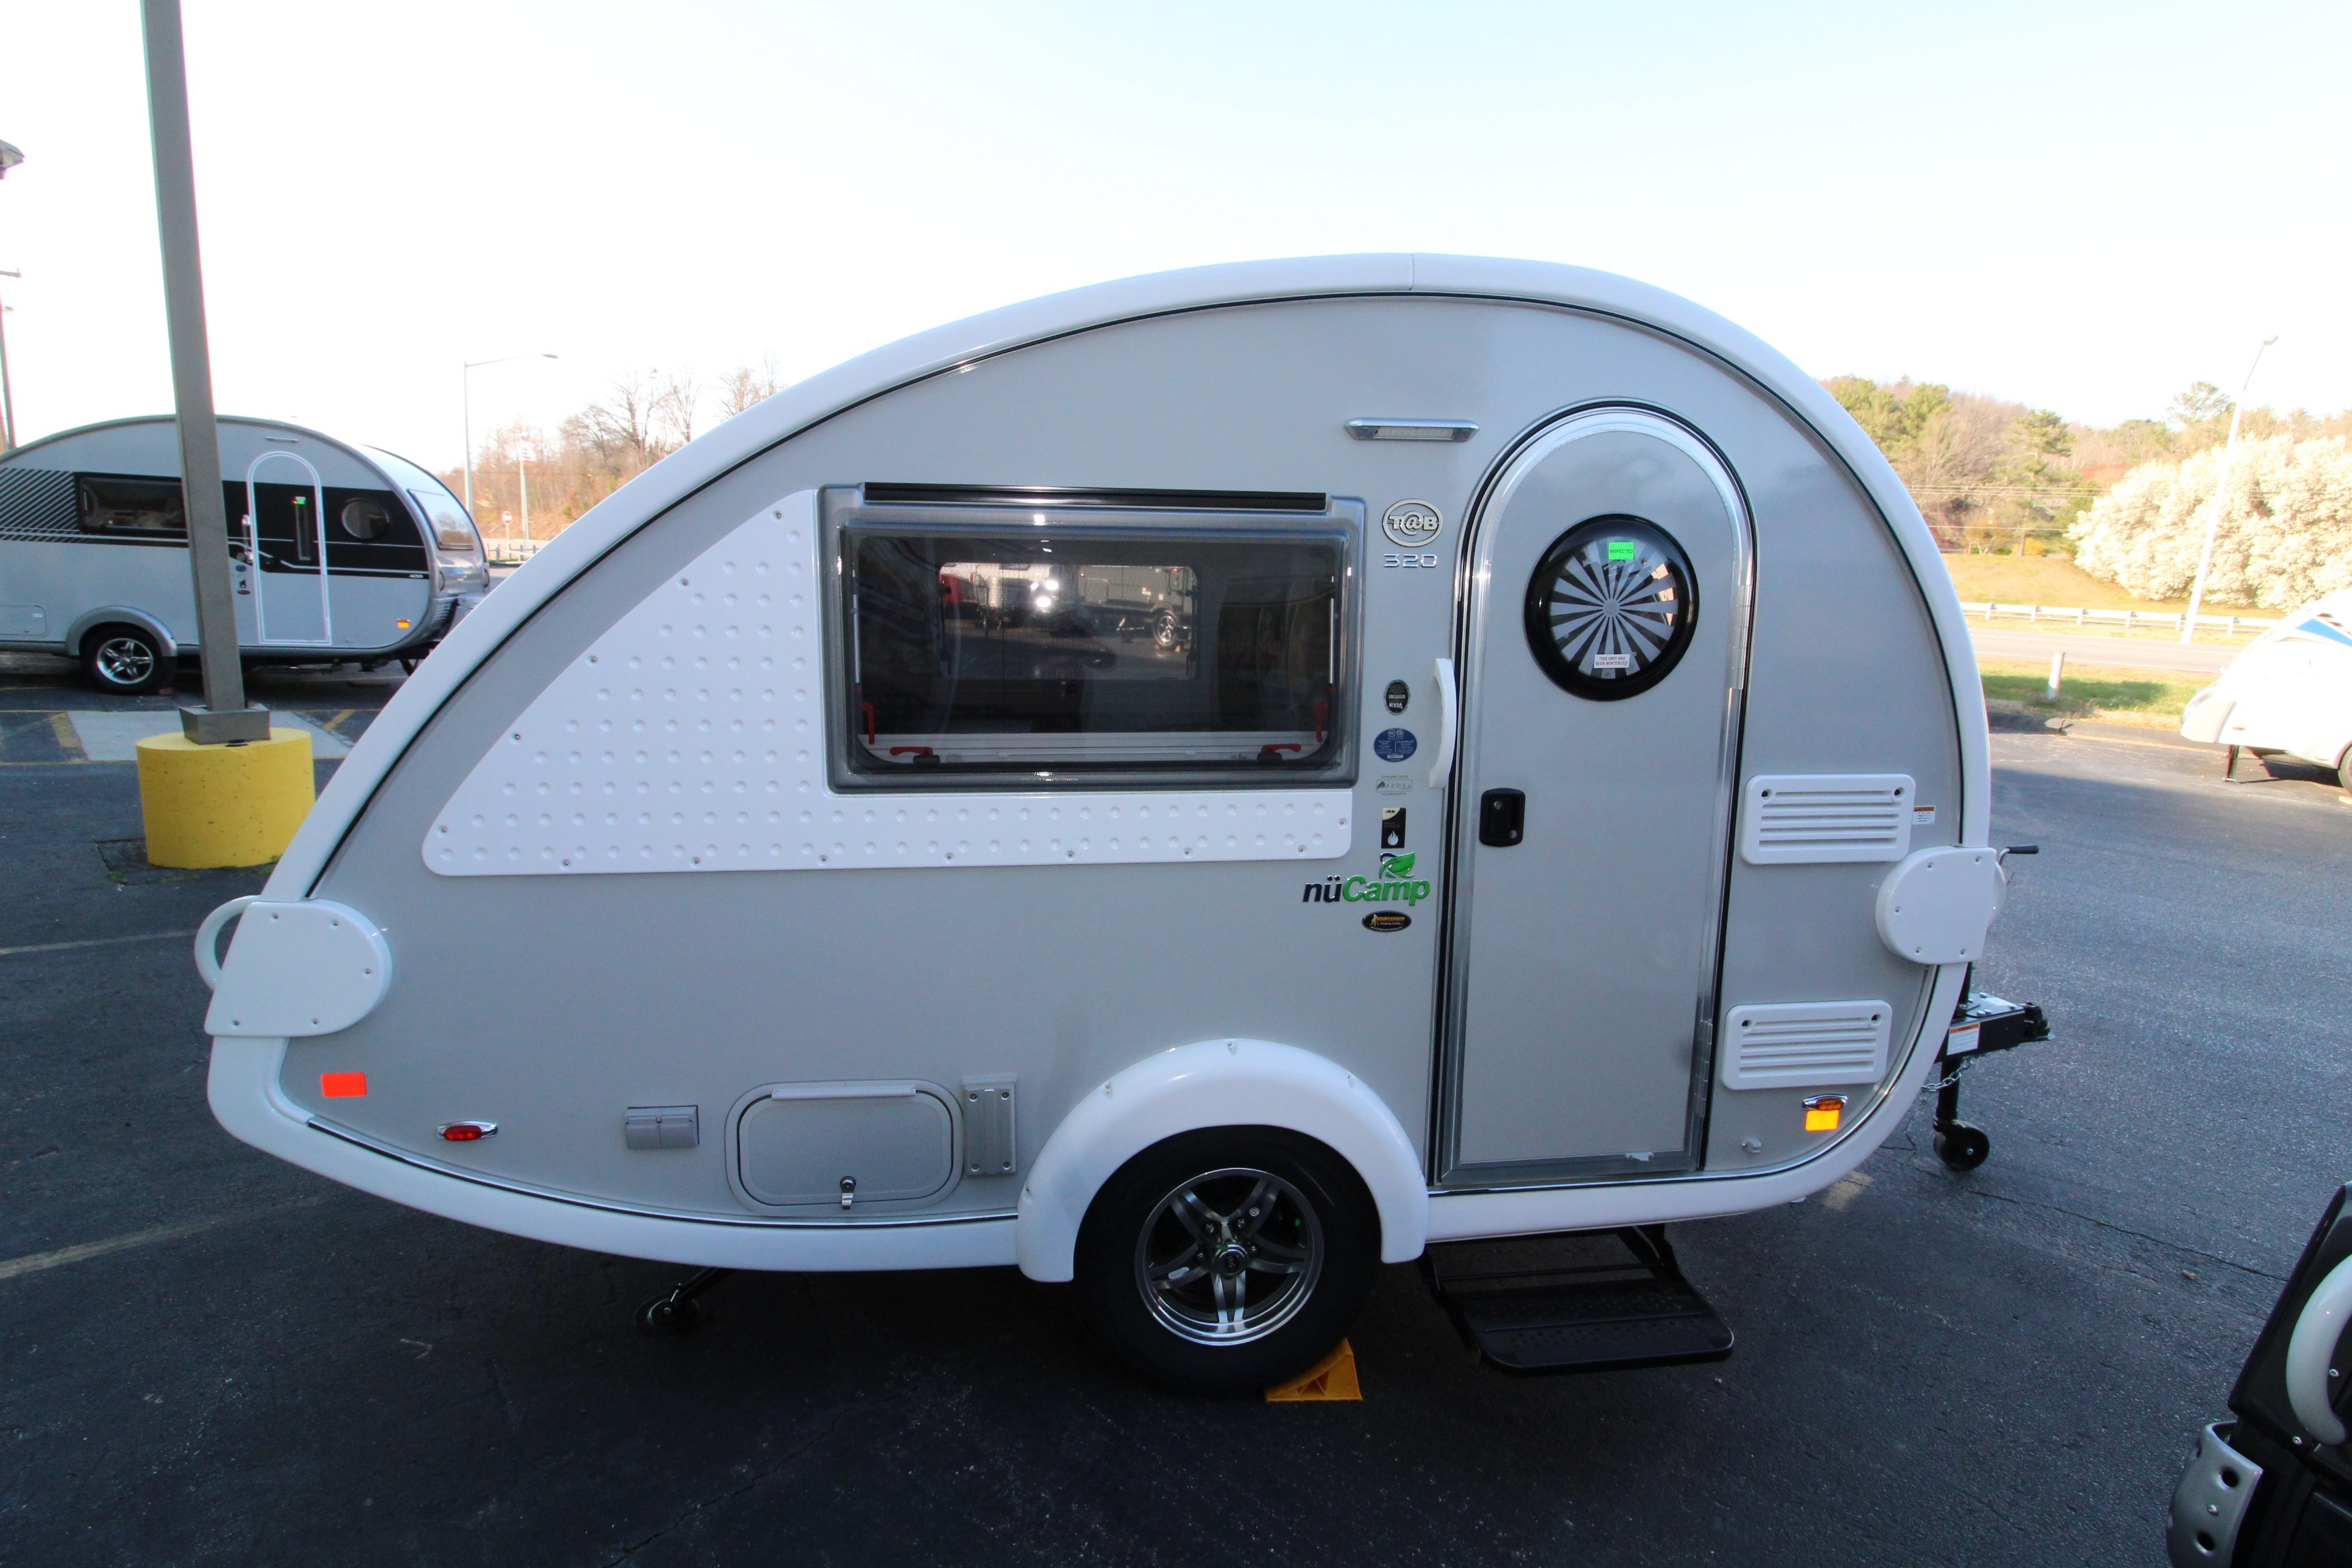 North Carolina NUCAMP T B Teardrop Campers T B S For Sale NUCAMP